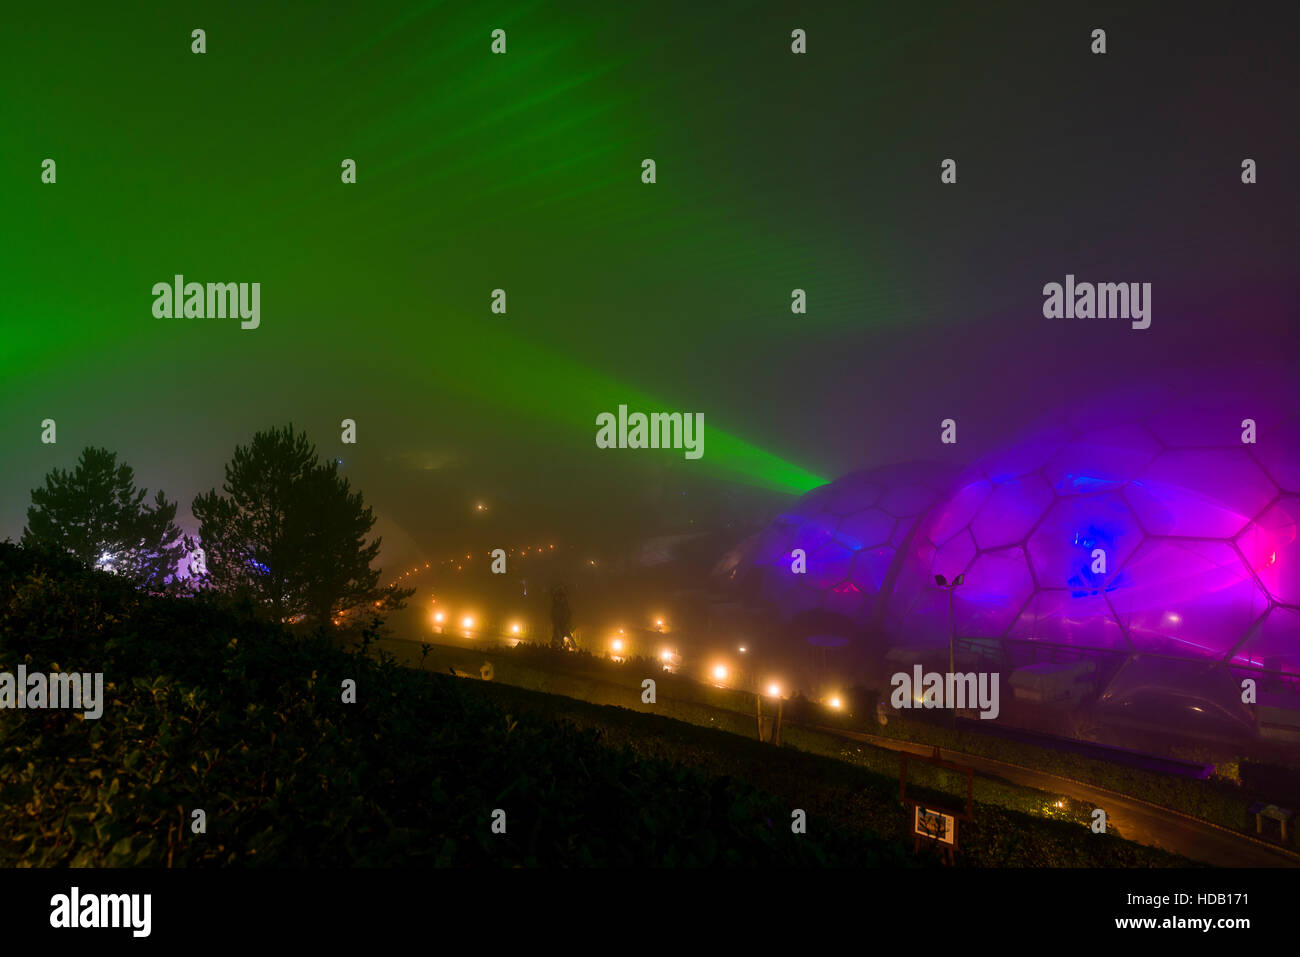 Eden Project Light and Sound show in the Fog. Editorial use only. Late Autumn photo from their recent event - Stock Image